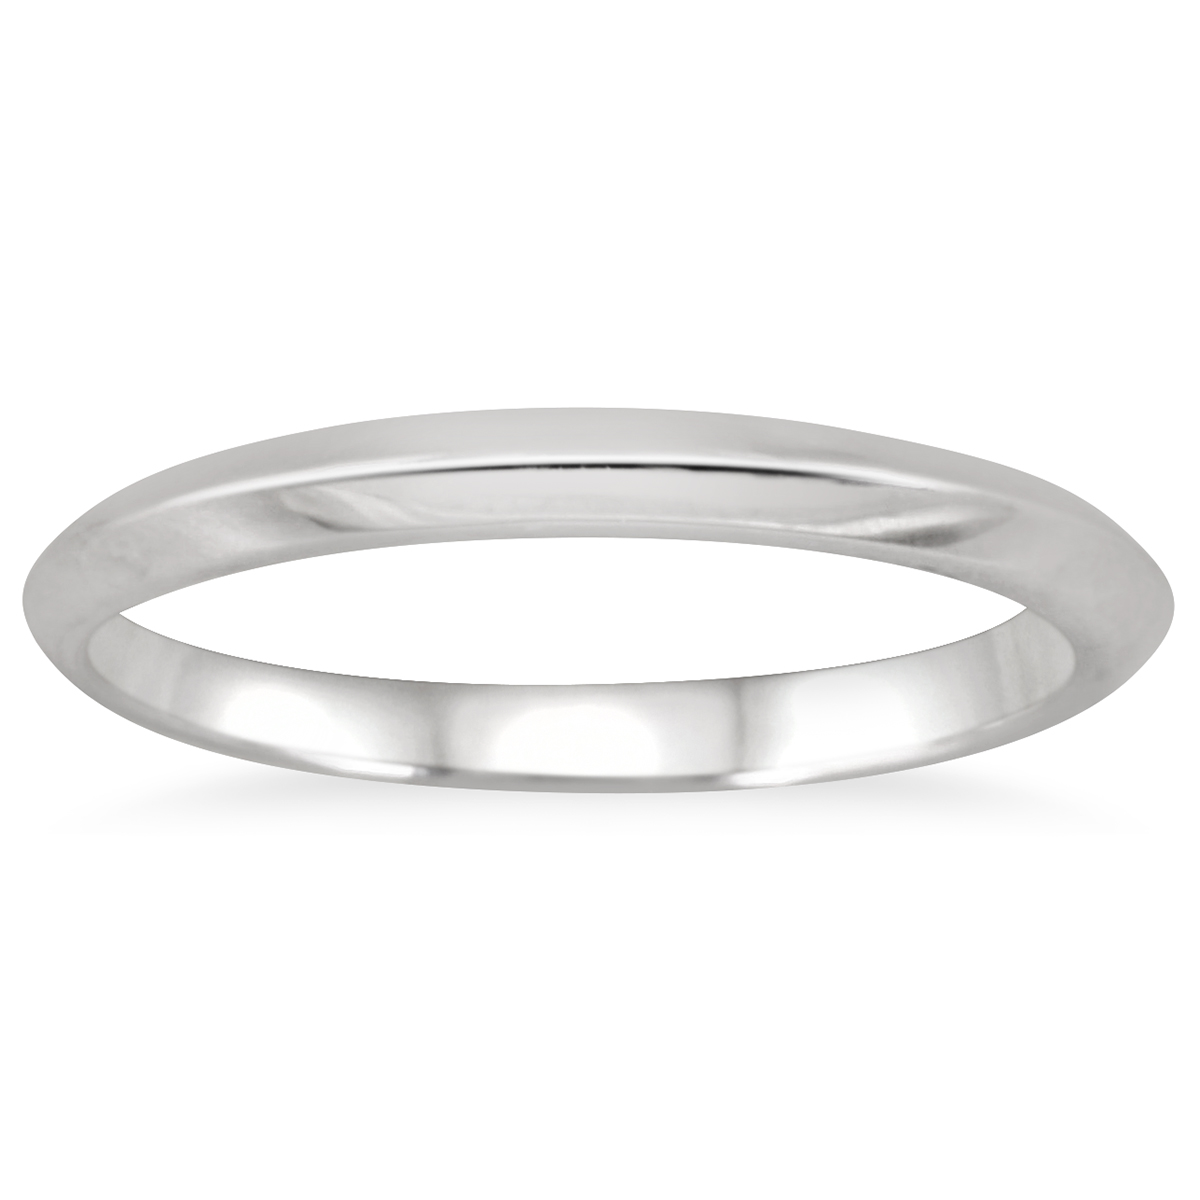 Plain Comfort-Fit Wedding Band in 14k White Gold